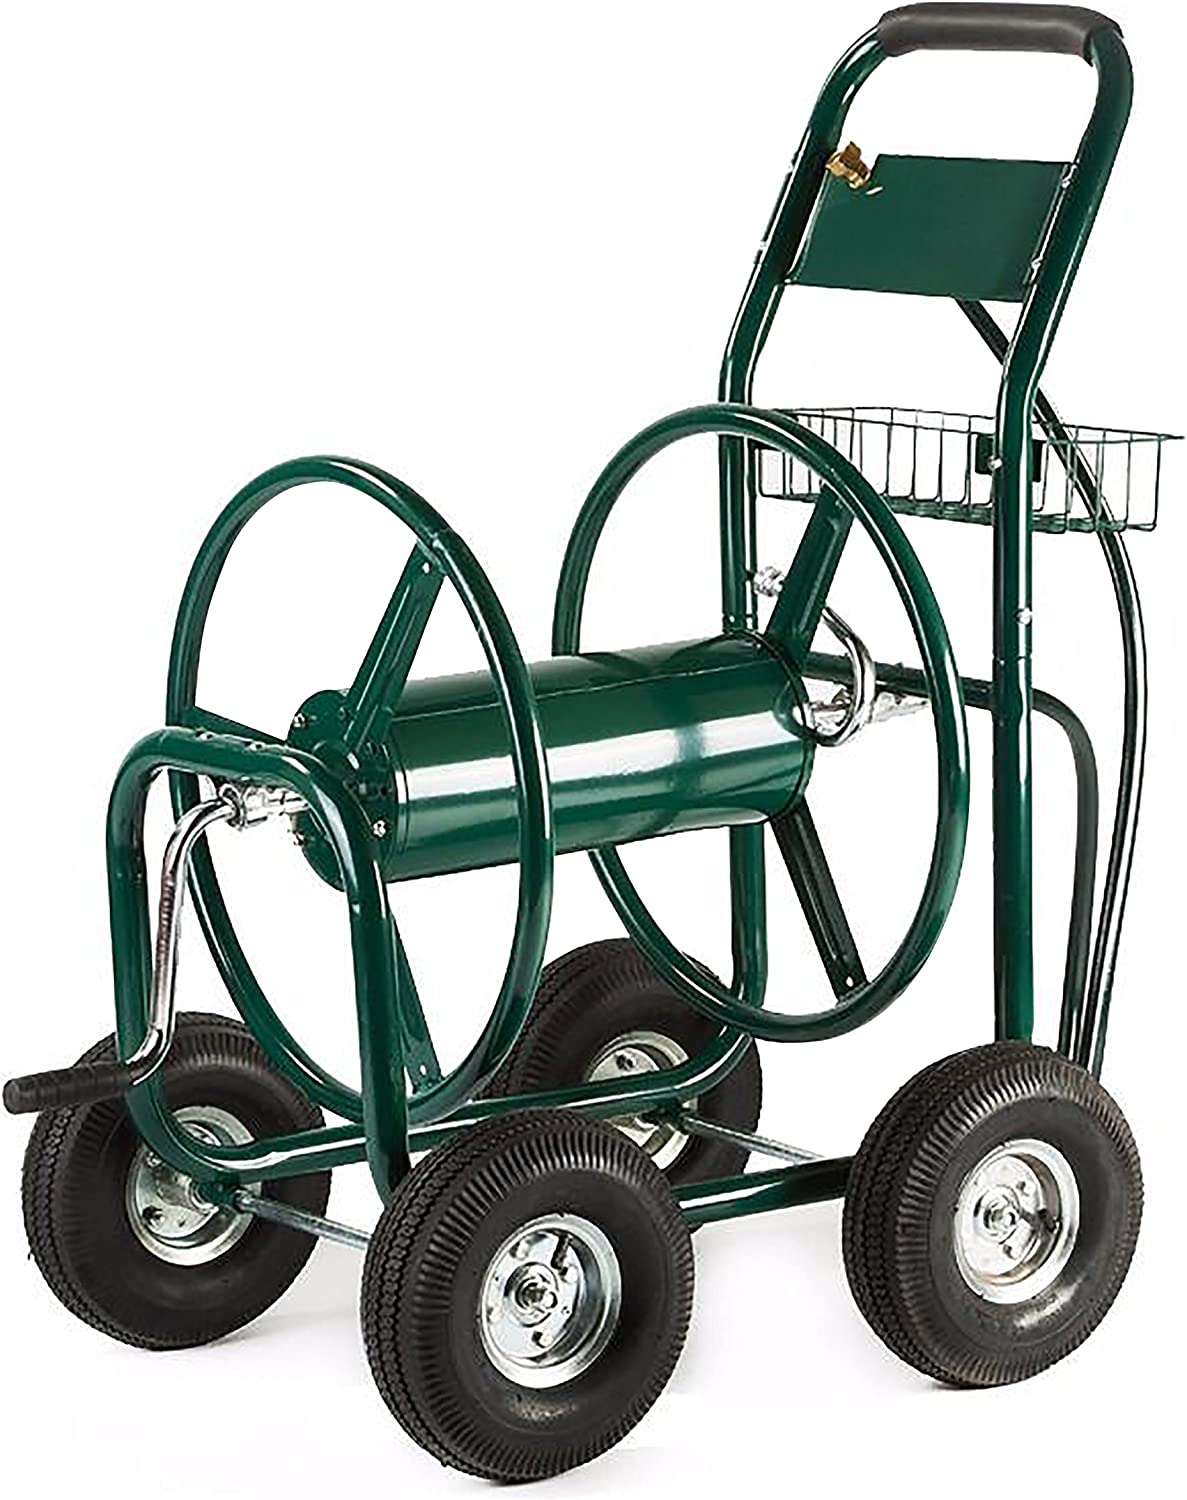 ALEKO GHRC400 Heavy Duty Hose Reel Cart Industrial 4 Wheel 400 Foot Hose Capacity Outdoor Yard Garden Landscape Green